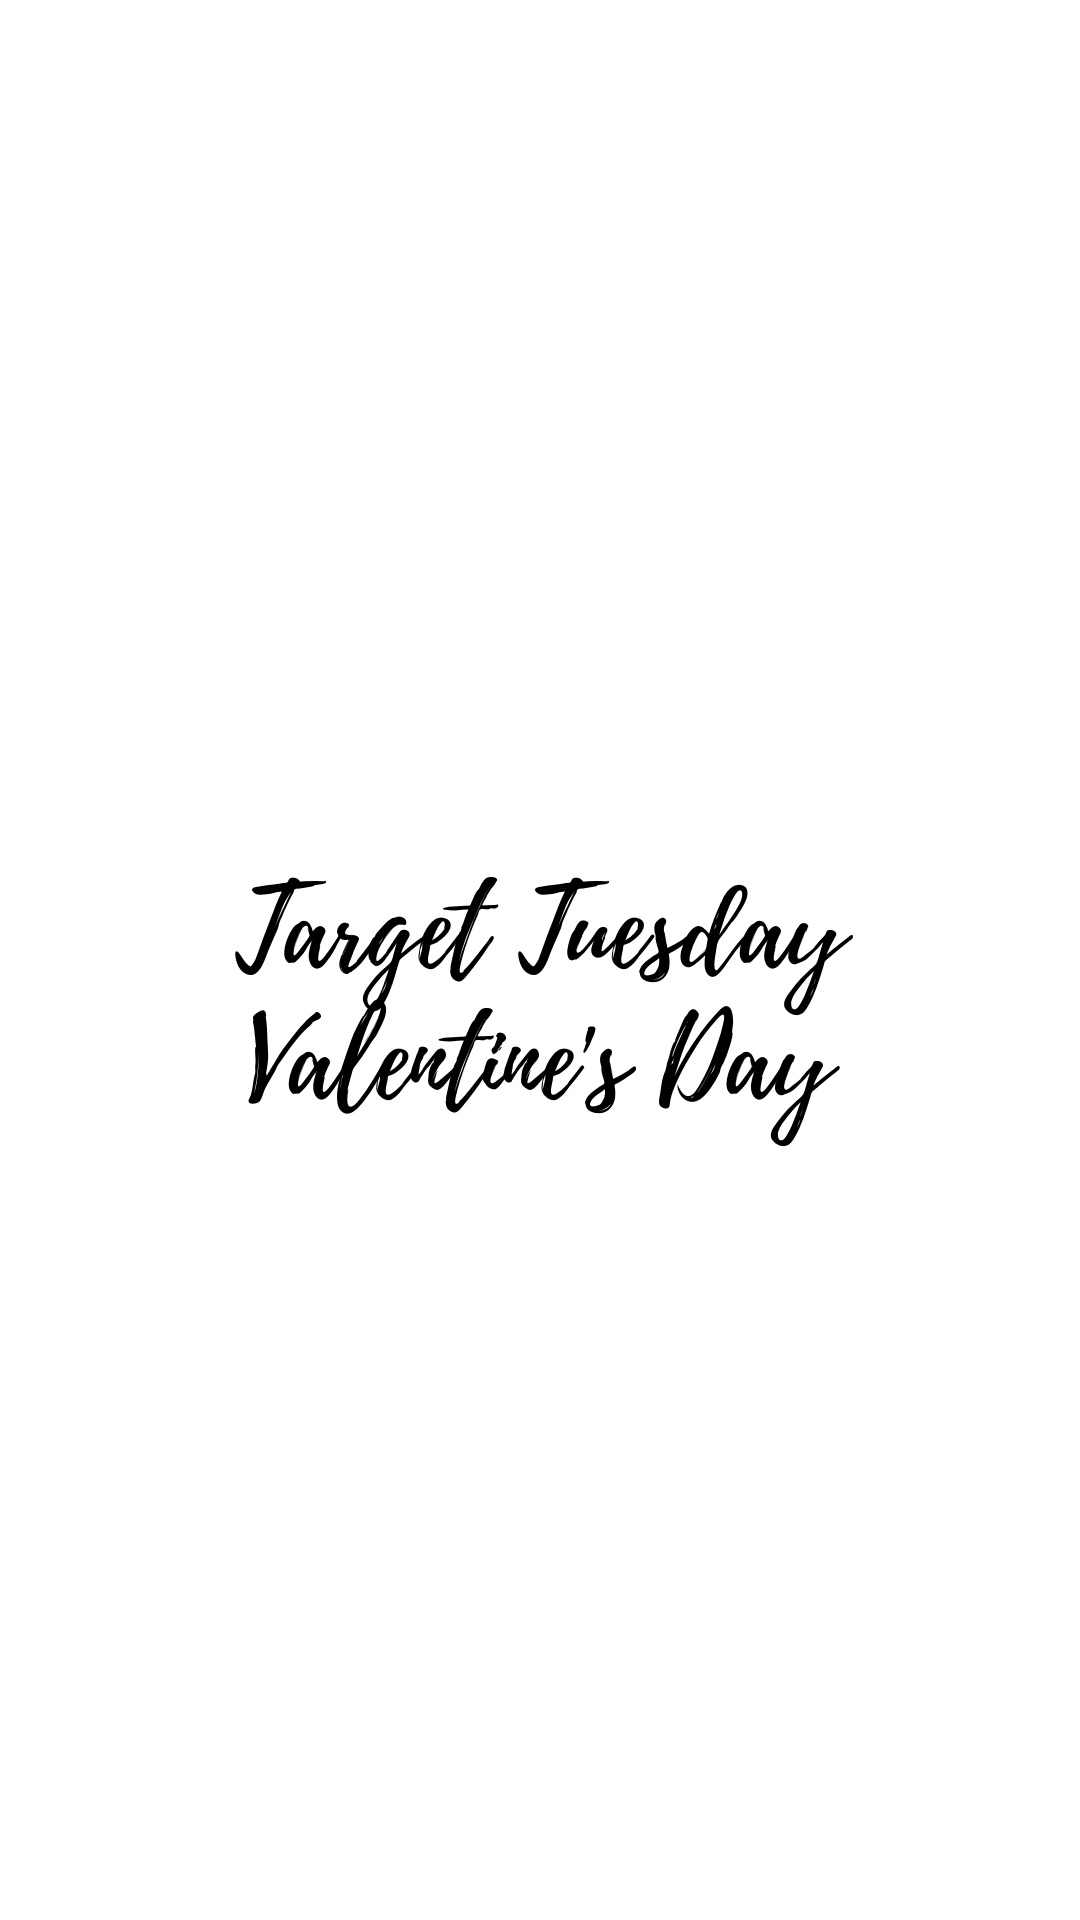 Target Tuesday-Valentine's Day with Sarah Bowmar!